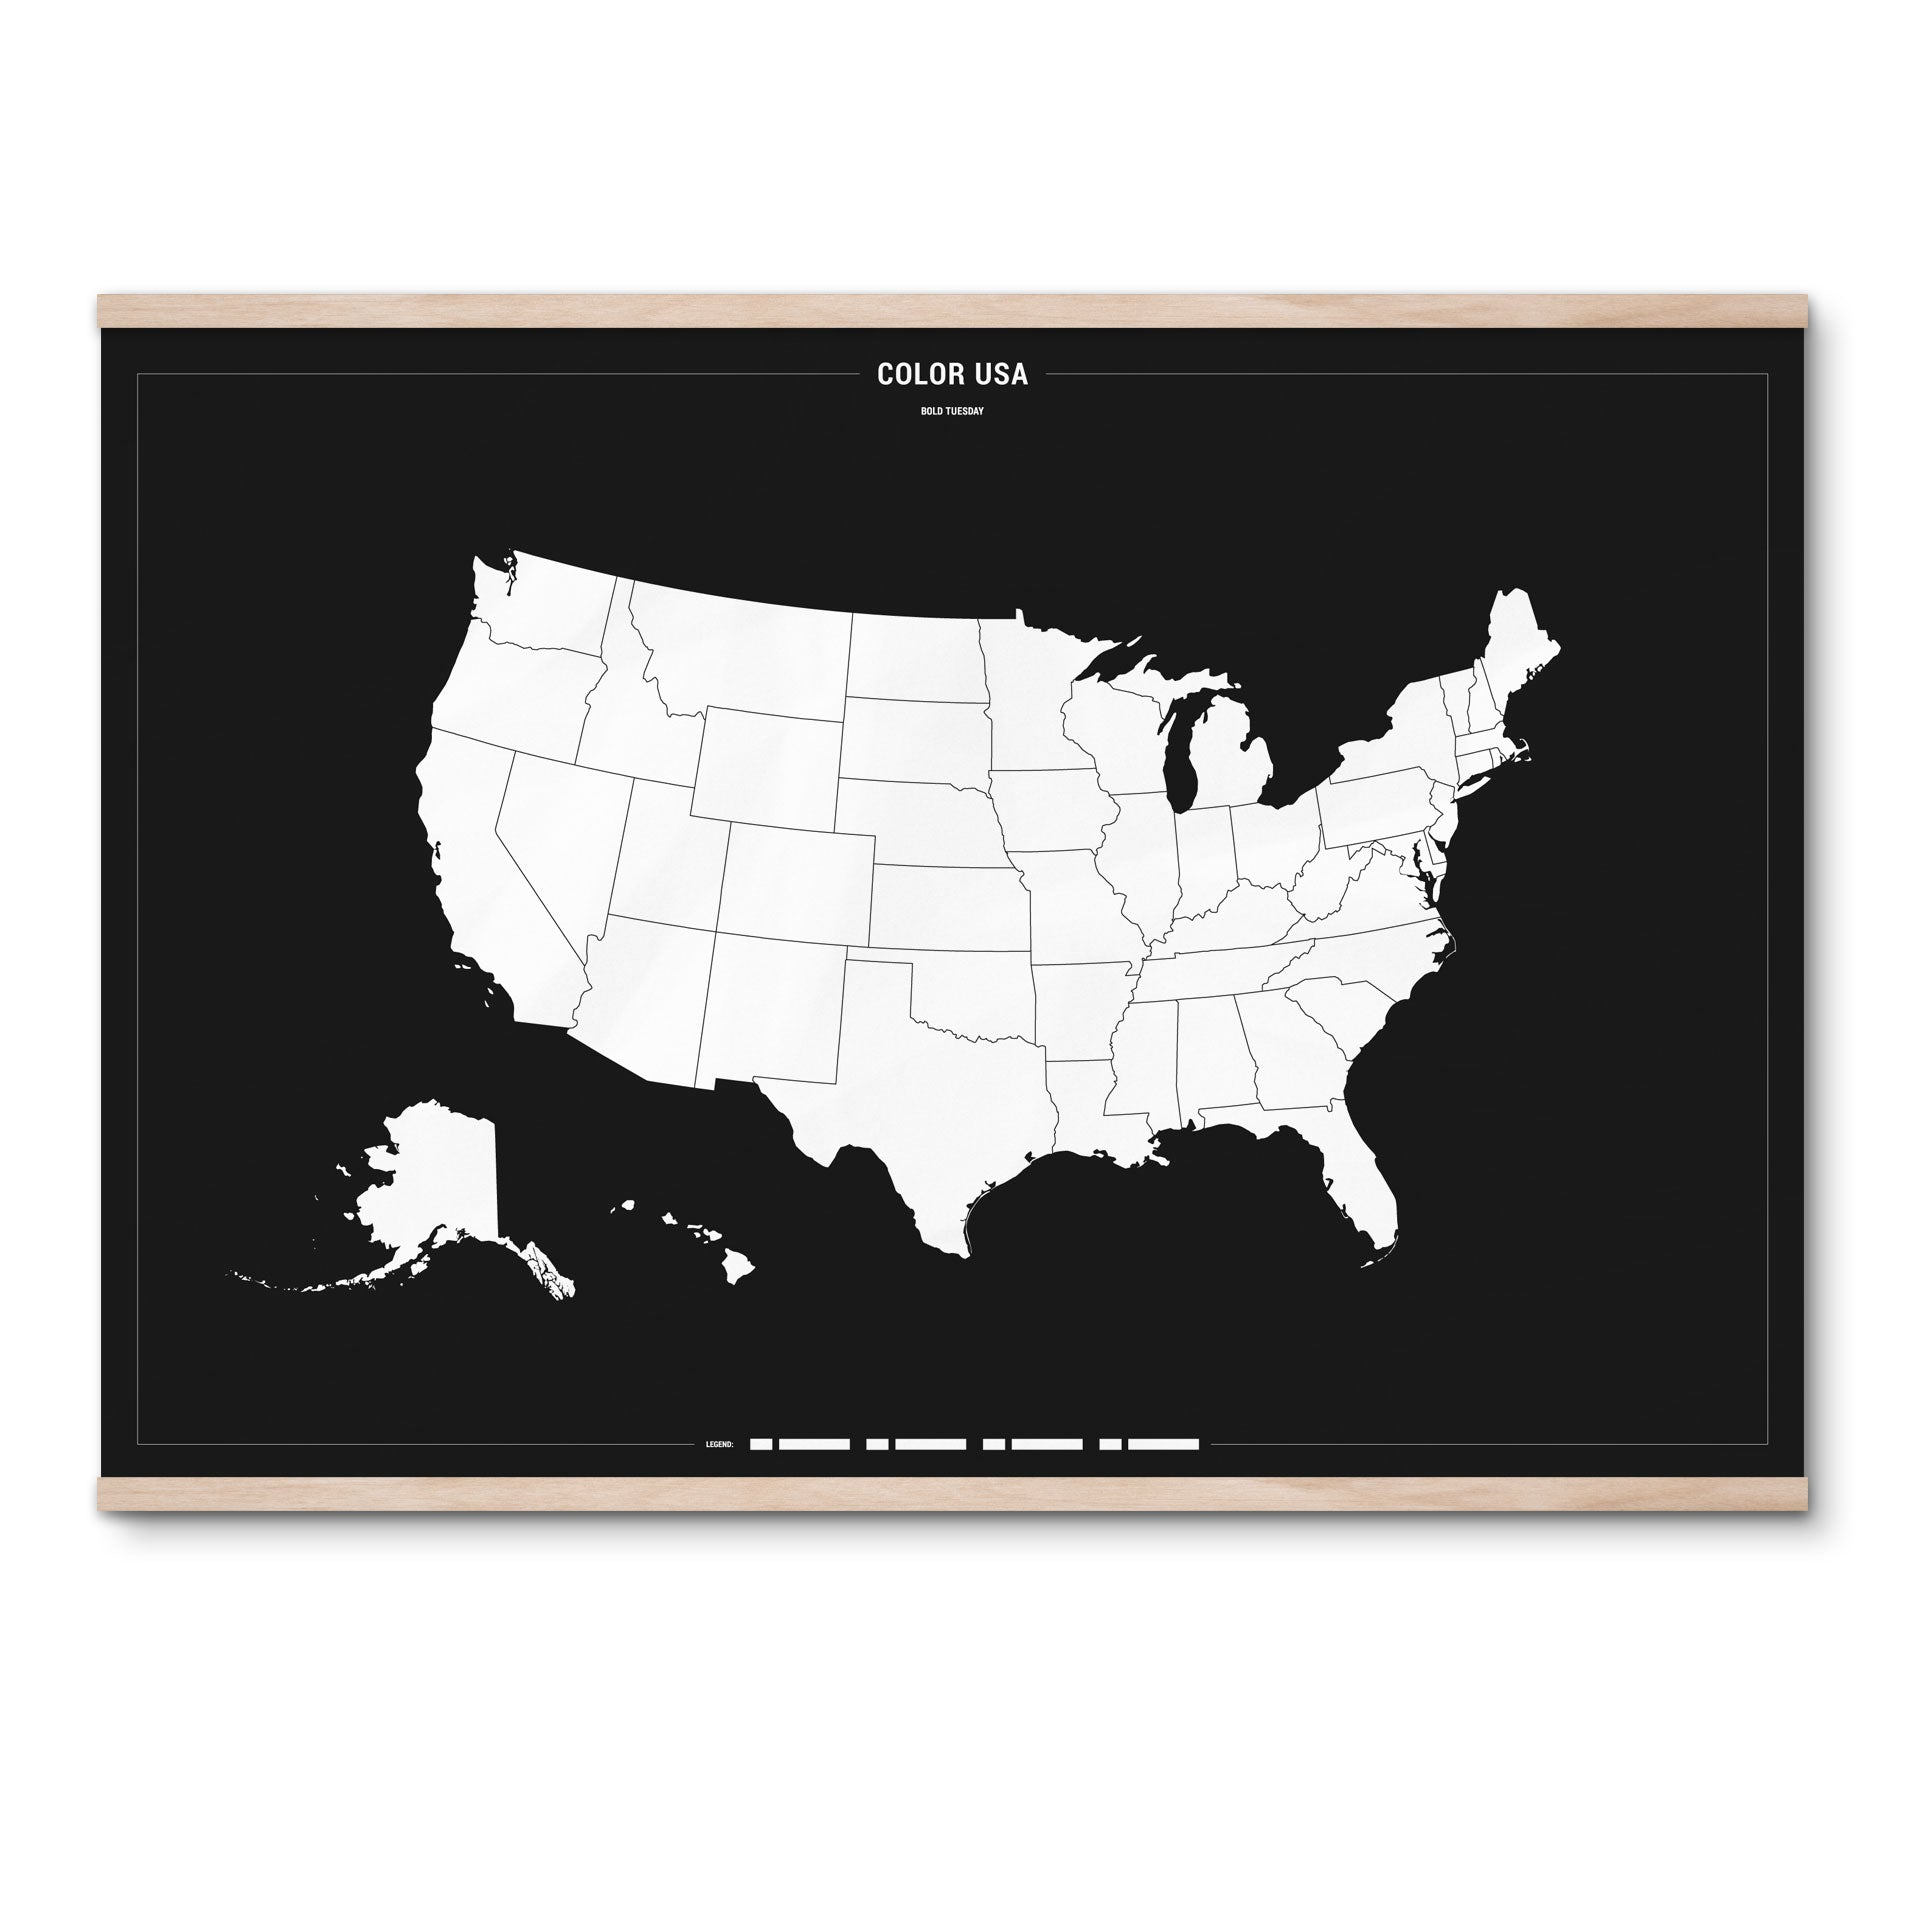 Color USA Travel Map Poster